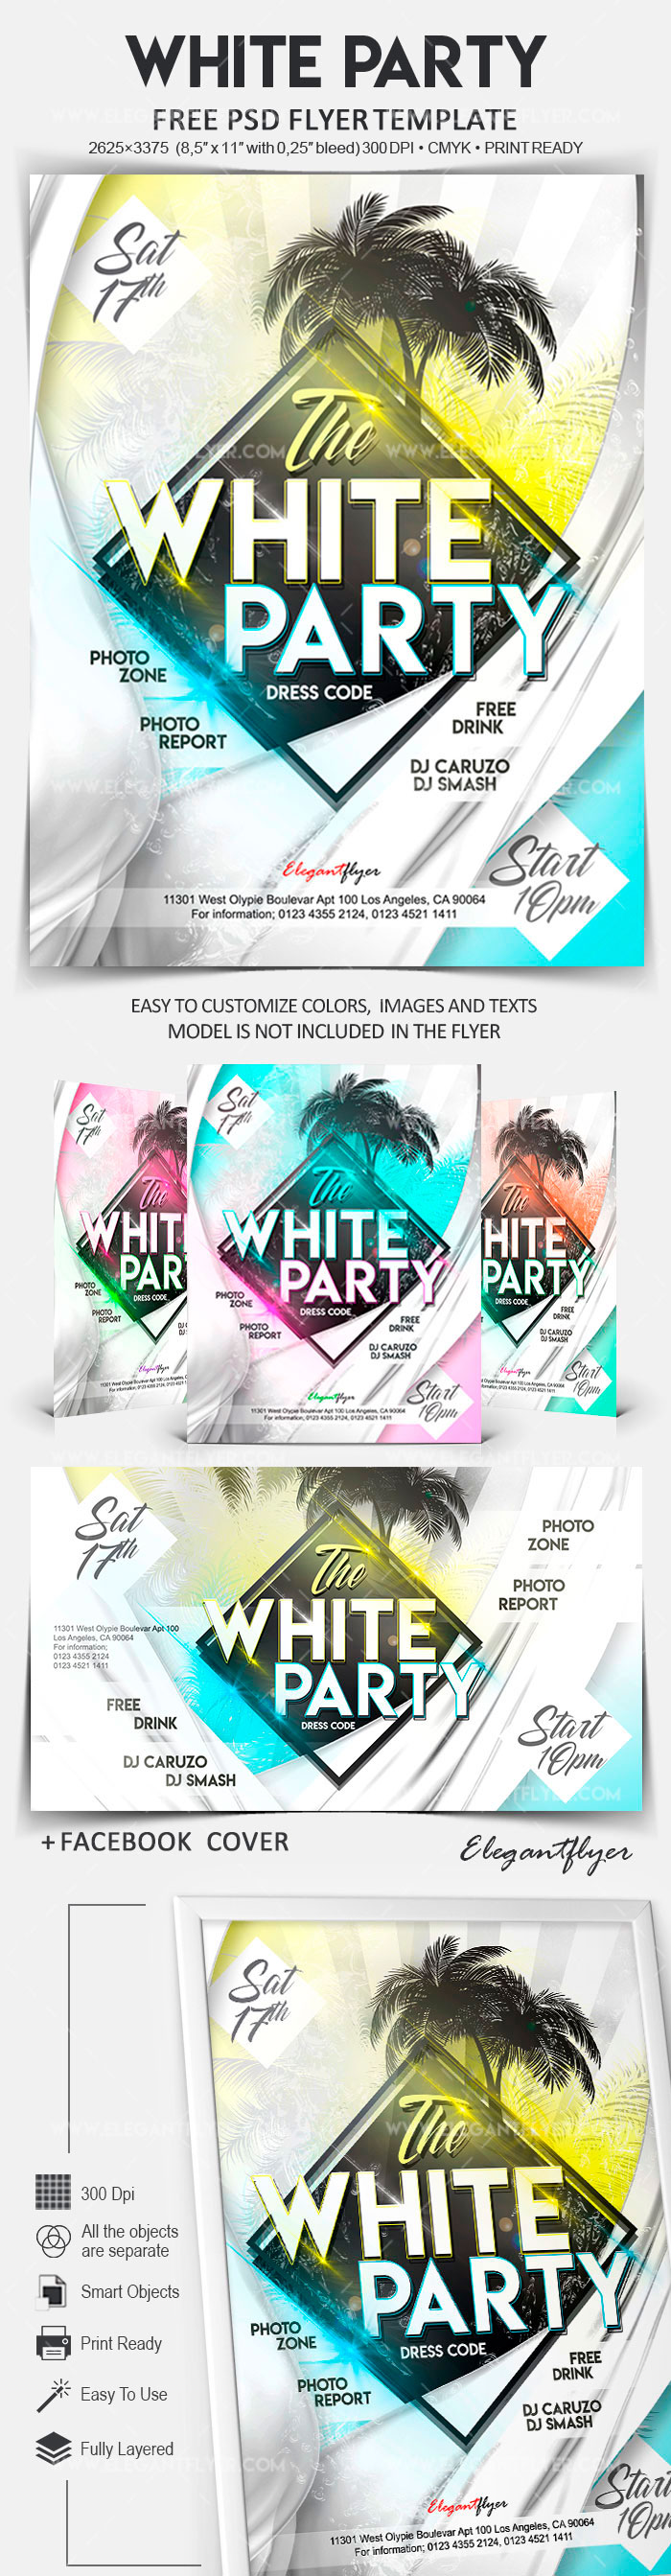 White Party – Free Flyer PSD Template